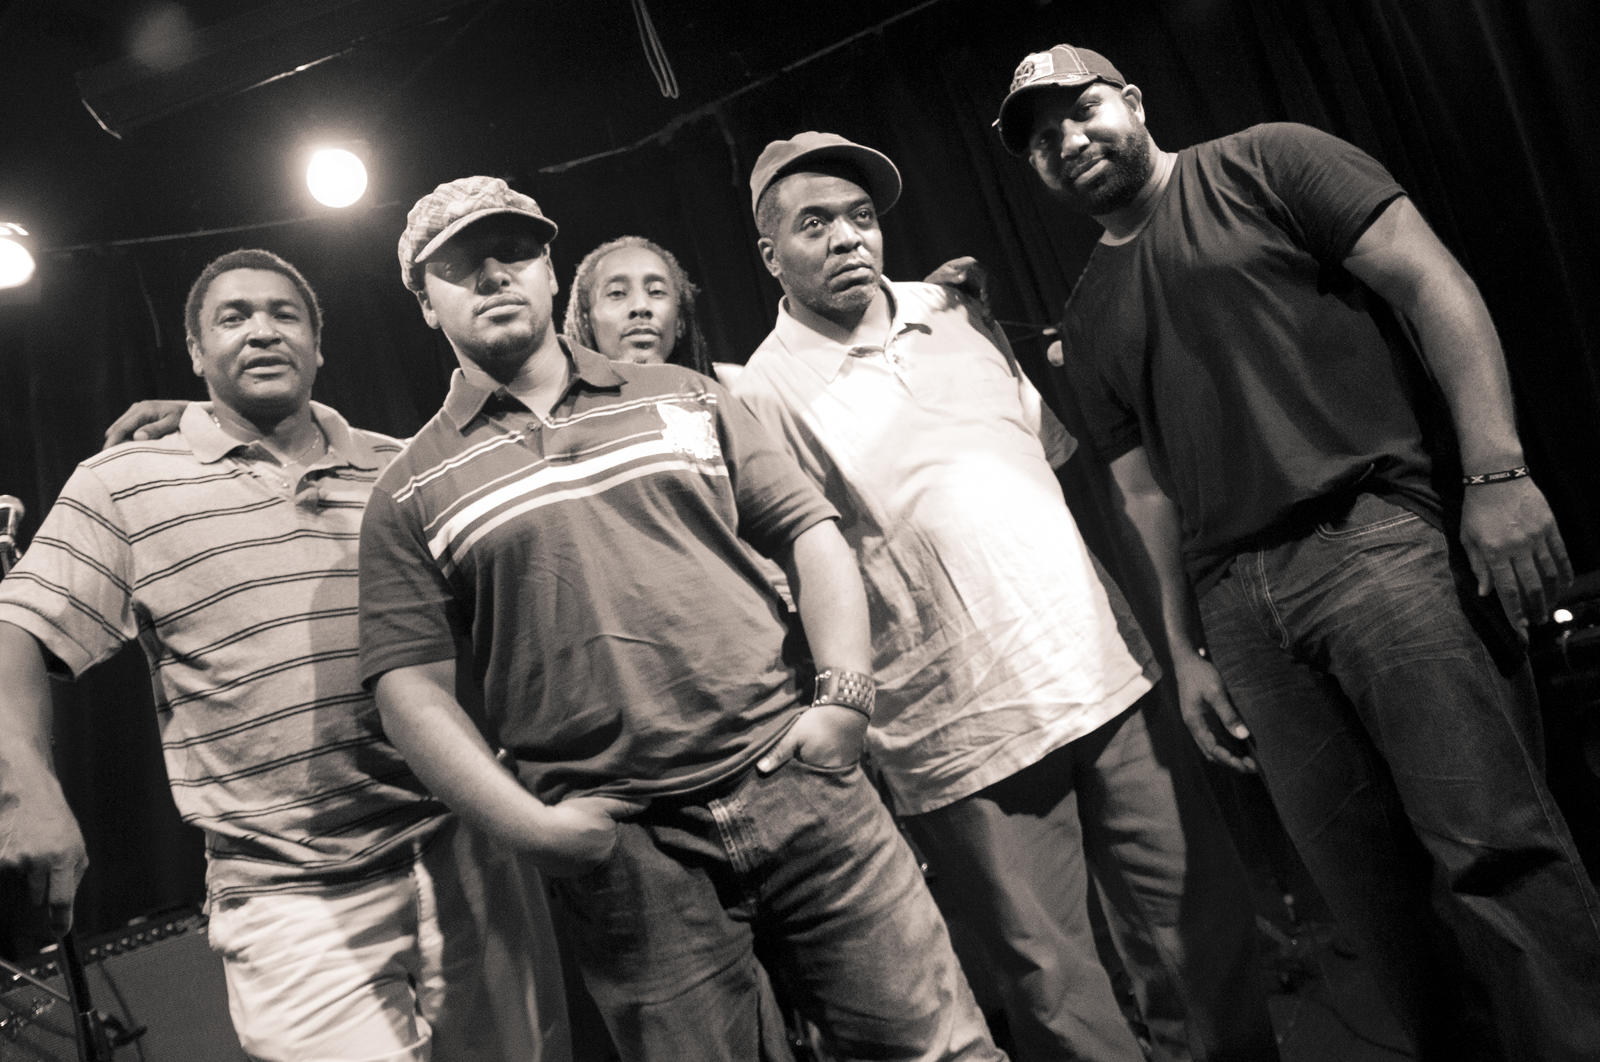 Ifficial Reggae Movement - Saturday, September 23, 2:30-3:30pmWest Stage at the Midway